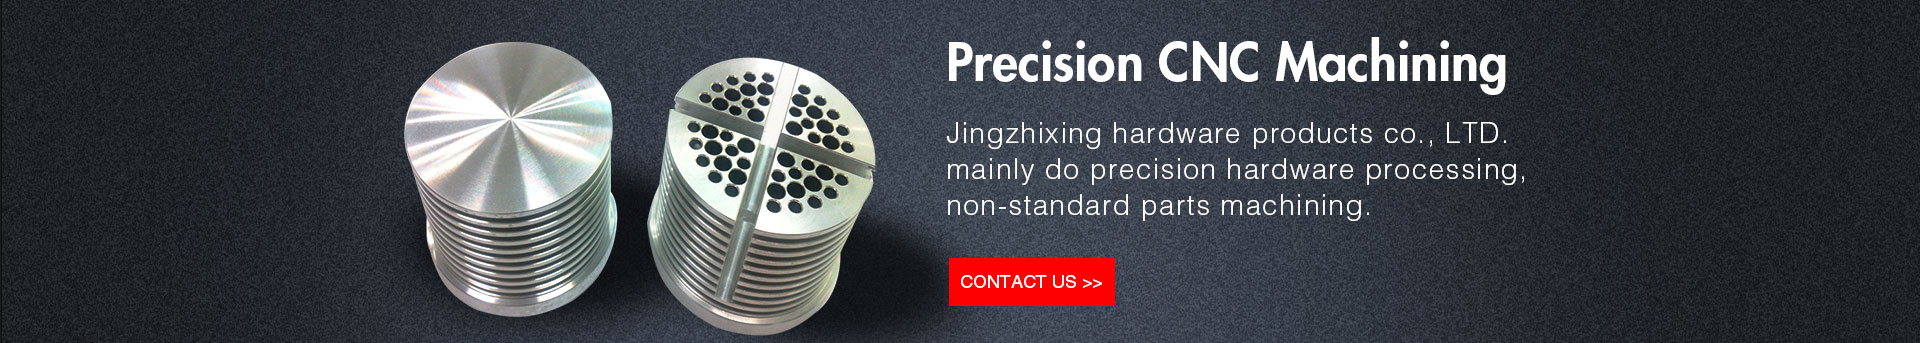 Precision CNC Machining